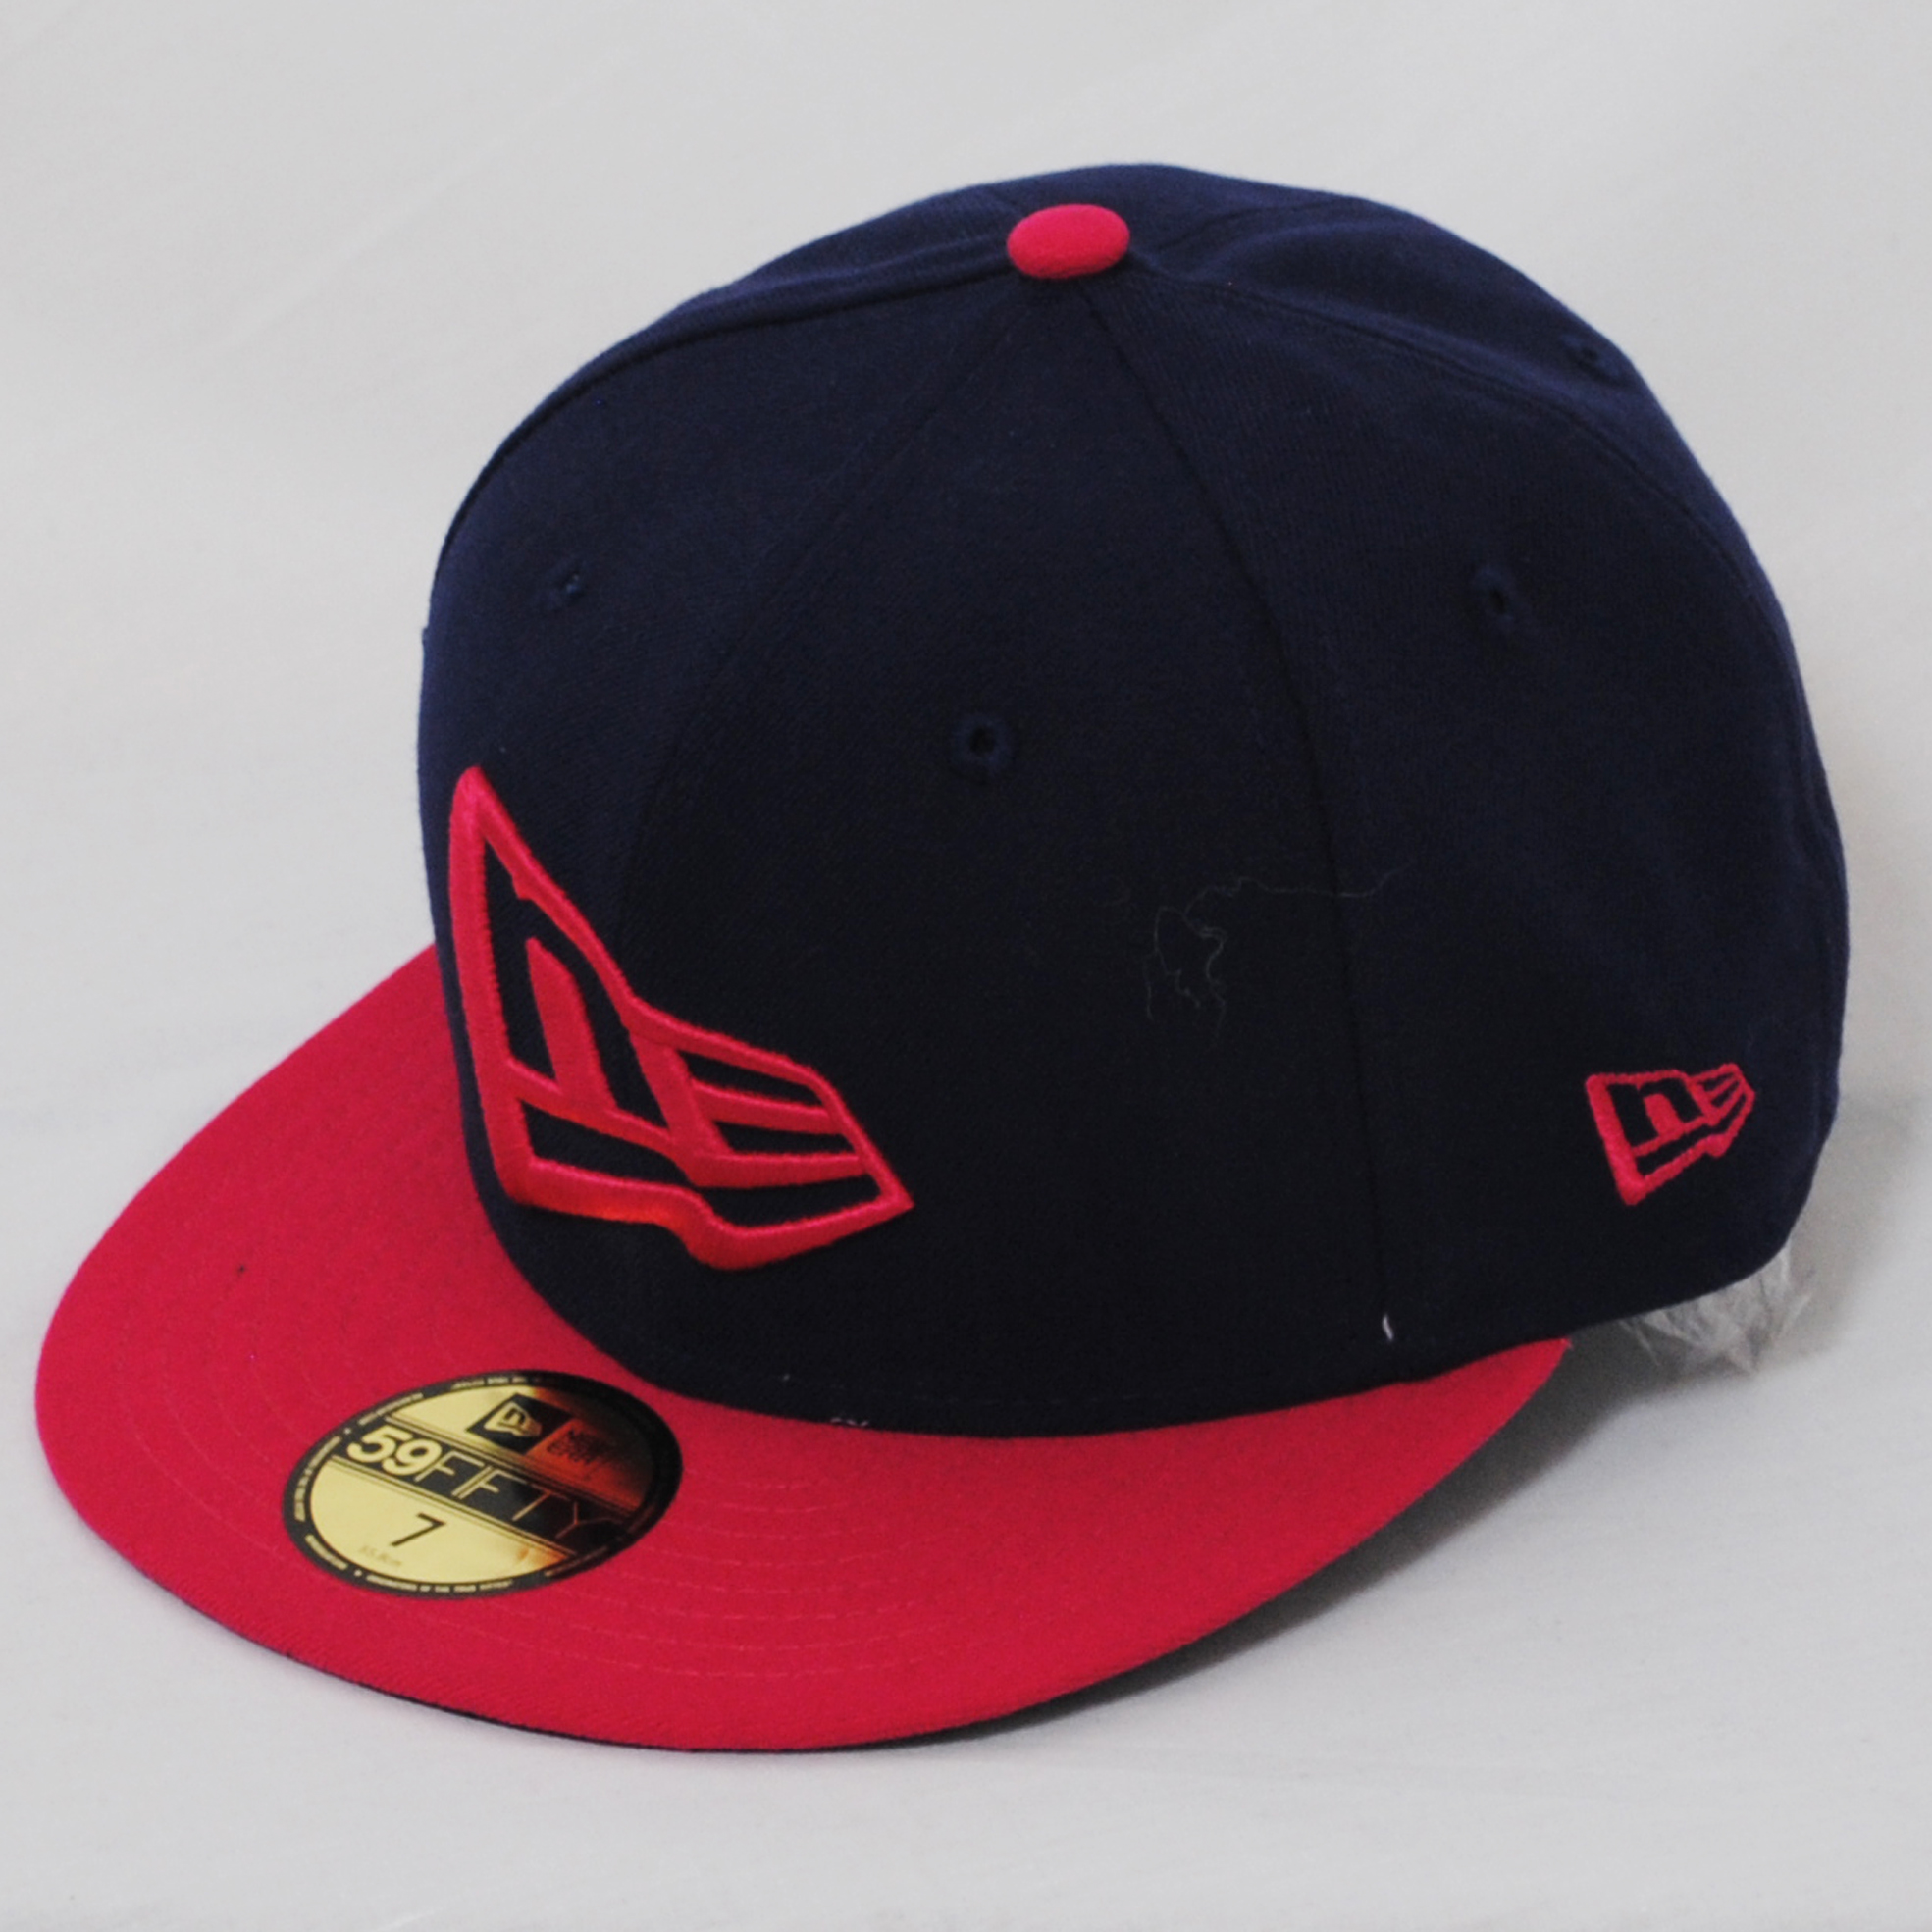 Era Flag Fitted Blue Rose Cap 59fifty Navy New Flat Hat Pink Peak ZpqEpSwd 2fbda837bec